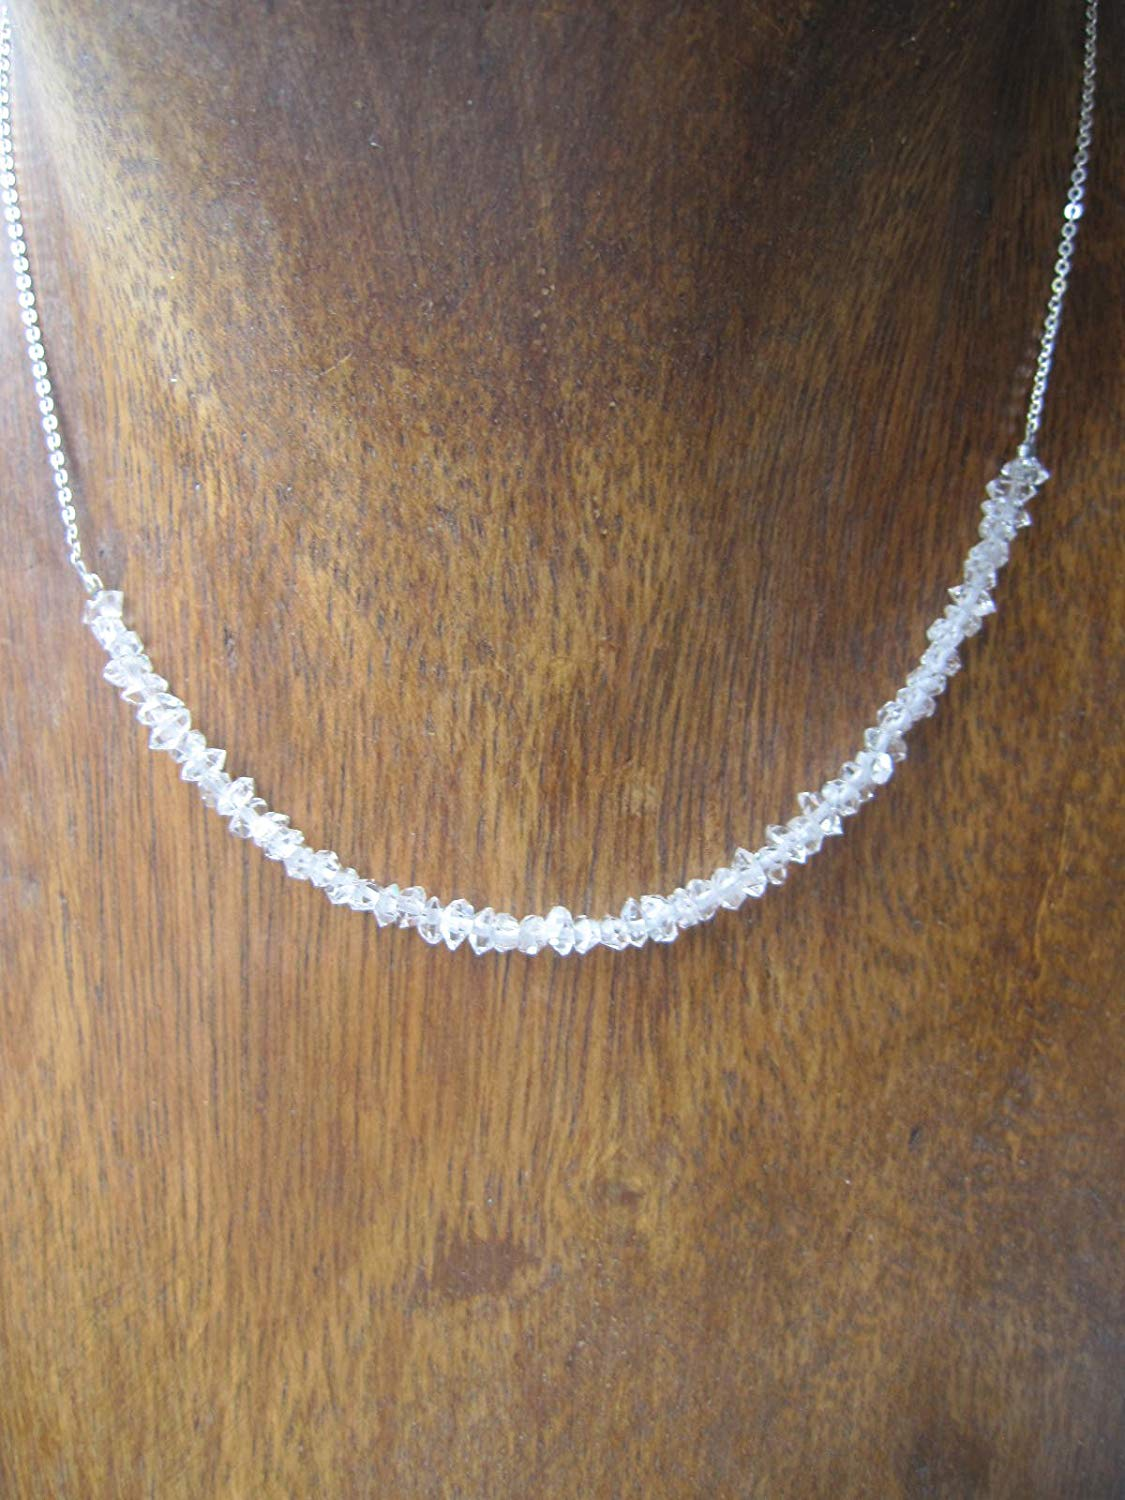 Herkimer Diamond Necklace 925 Sterling silver chain extender 1 inches - Size 16,18,20 inches